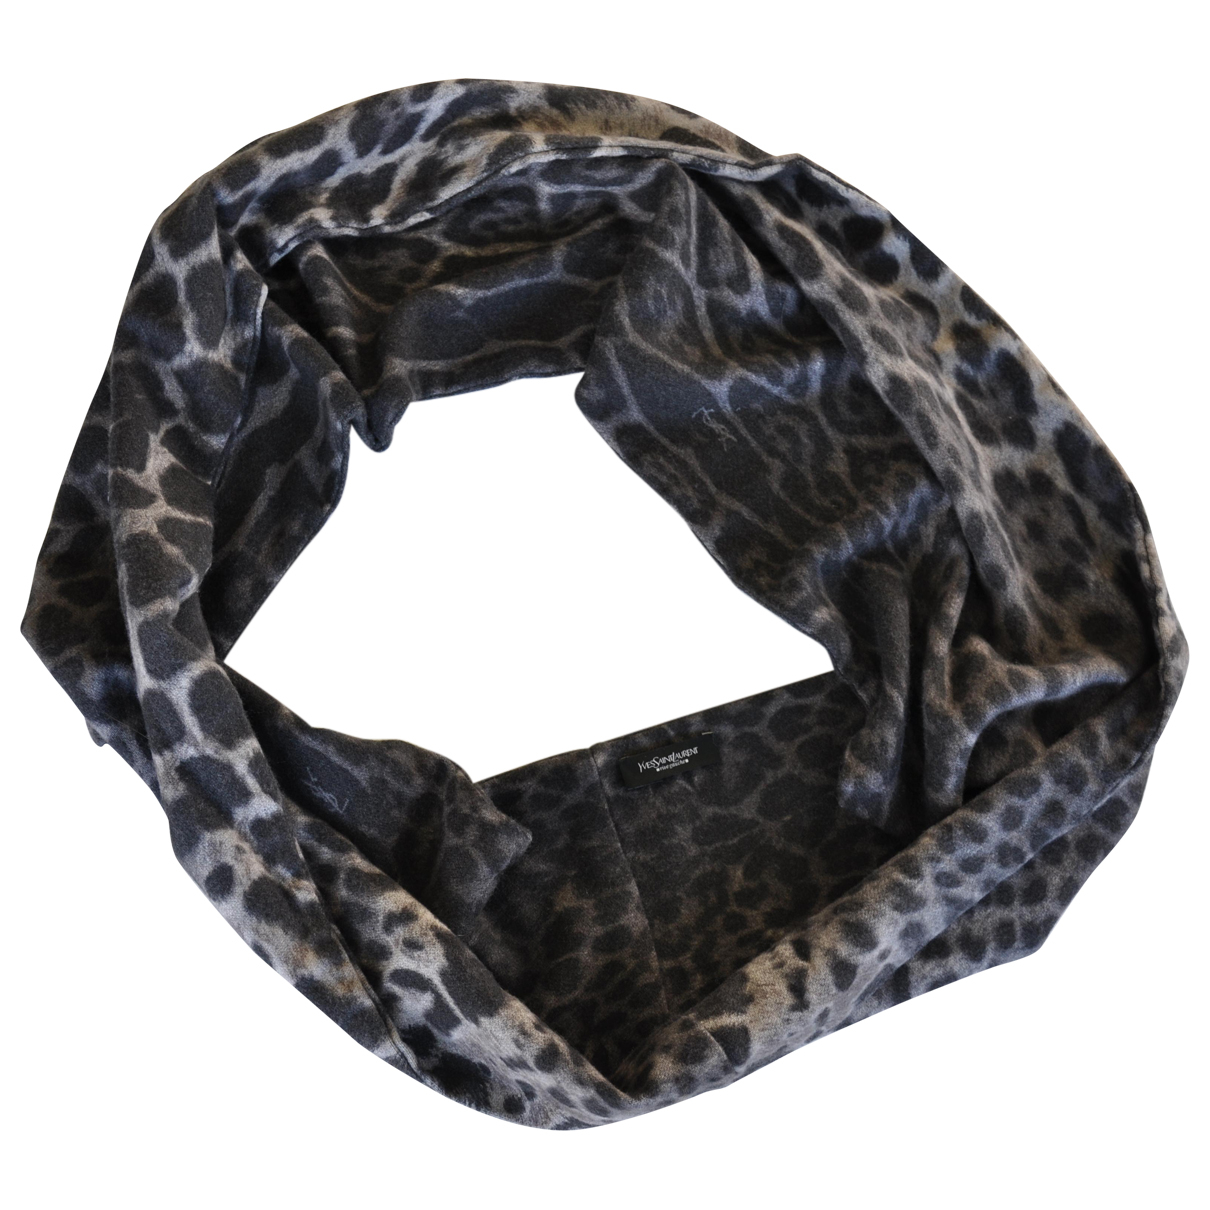 Yves Saint Laurent \N Grey Cashmere scarf for Women \N